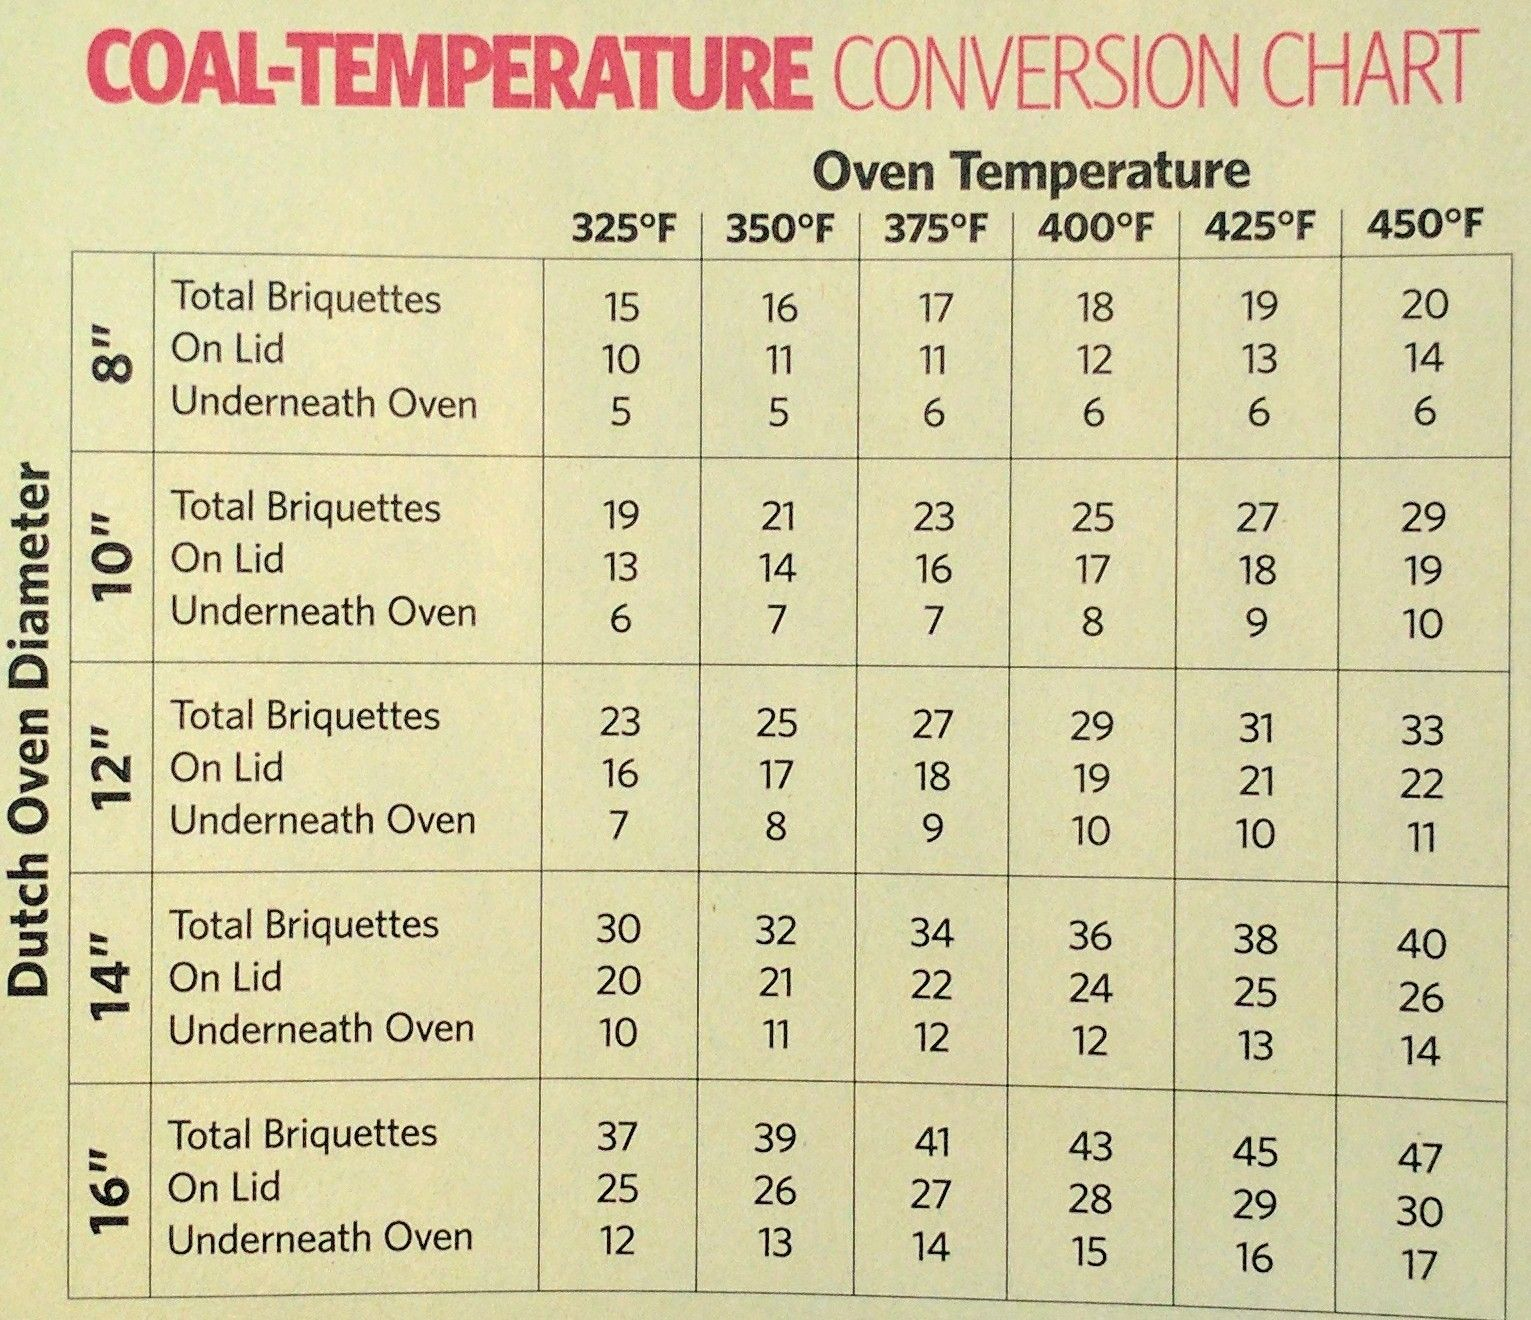 Dutch oven coal temperature conversion chart also scouts camping and rh pinterest